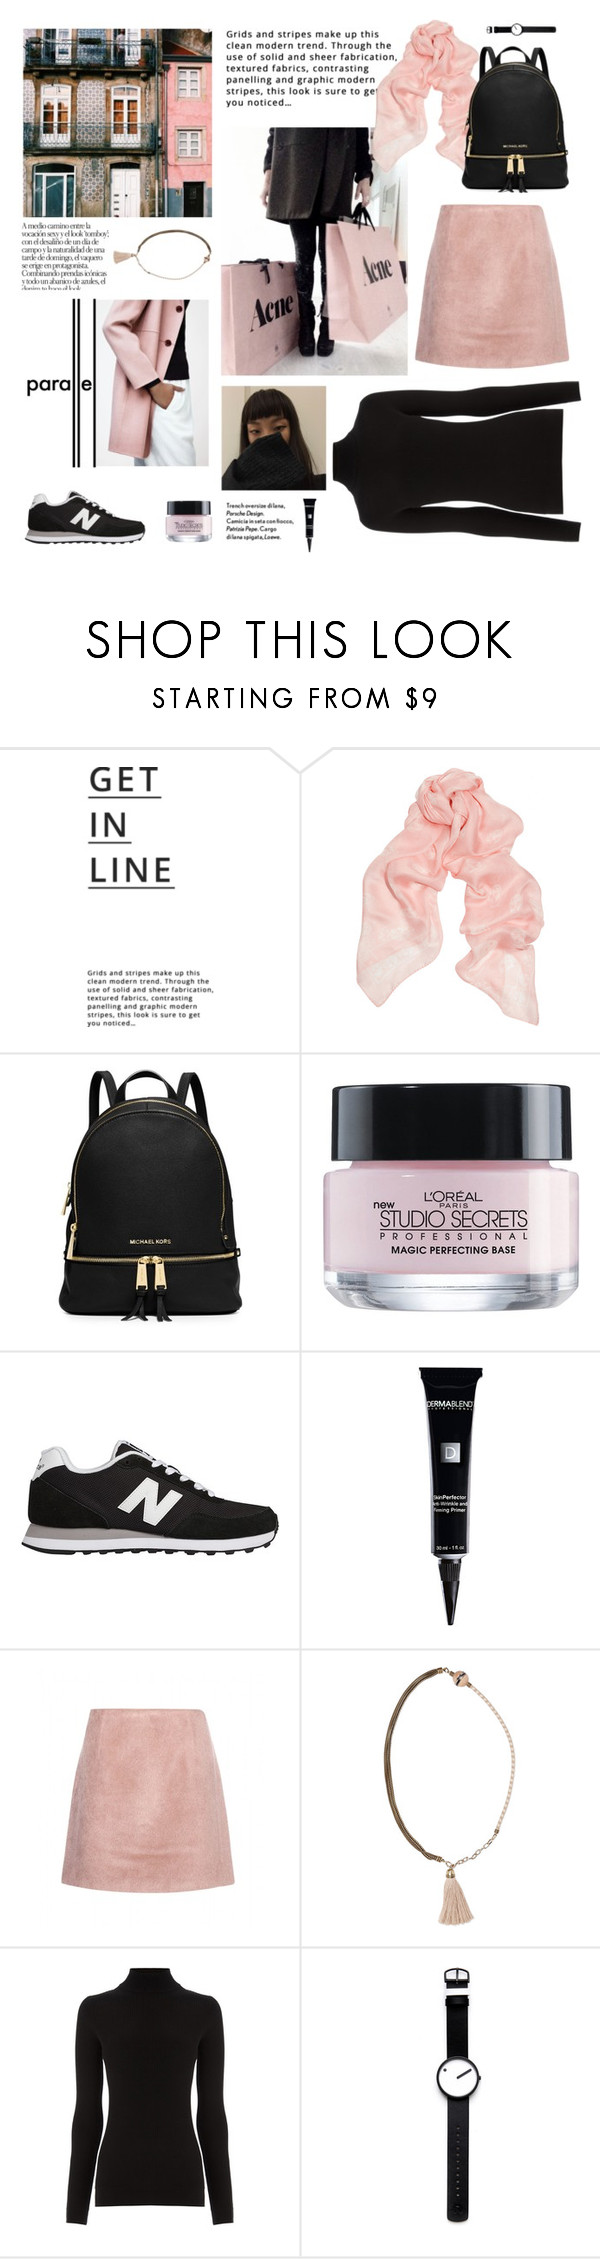 """Follow your dreams"" by divadiscodiva ❤ liked on Polyvore featuring Chanel, Metropolis, Lipsy, Alexander McQueen, MICHAEL Michael Kors, L'Oréal Paris, New Balance, Dermablend, Acne Studios and Lanvin"